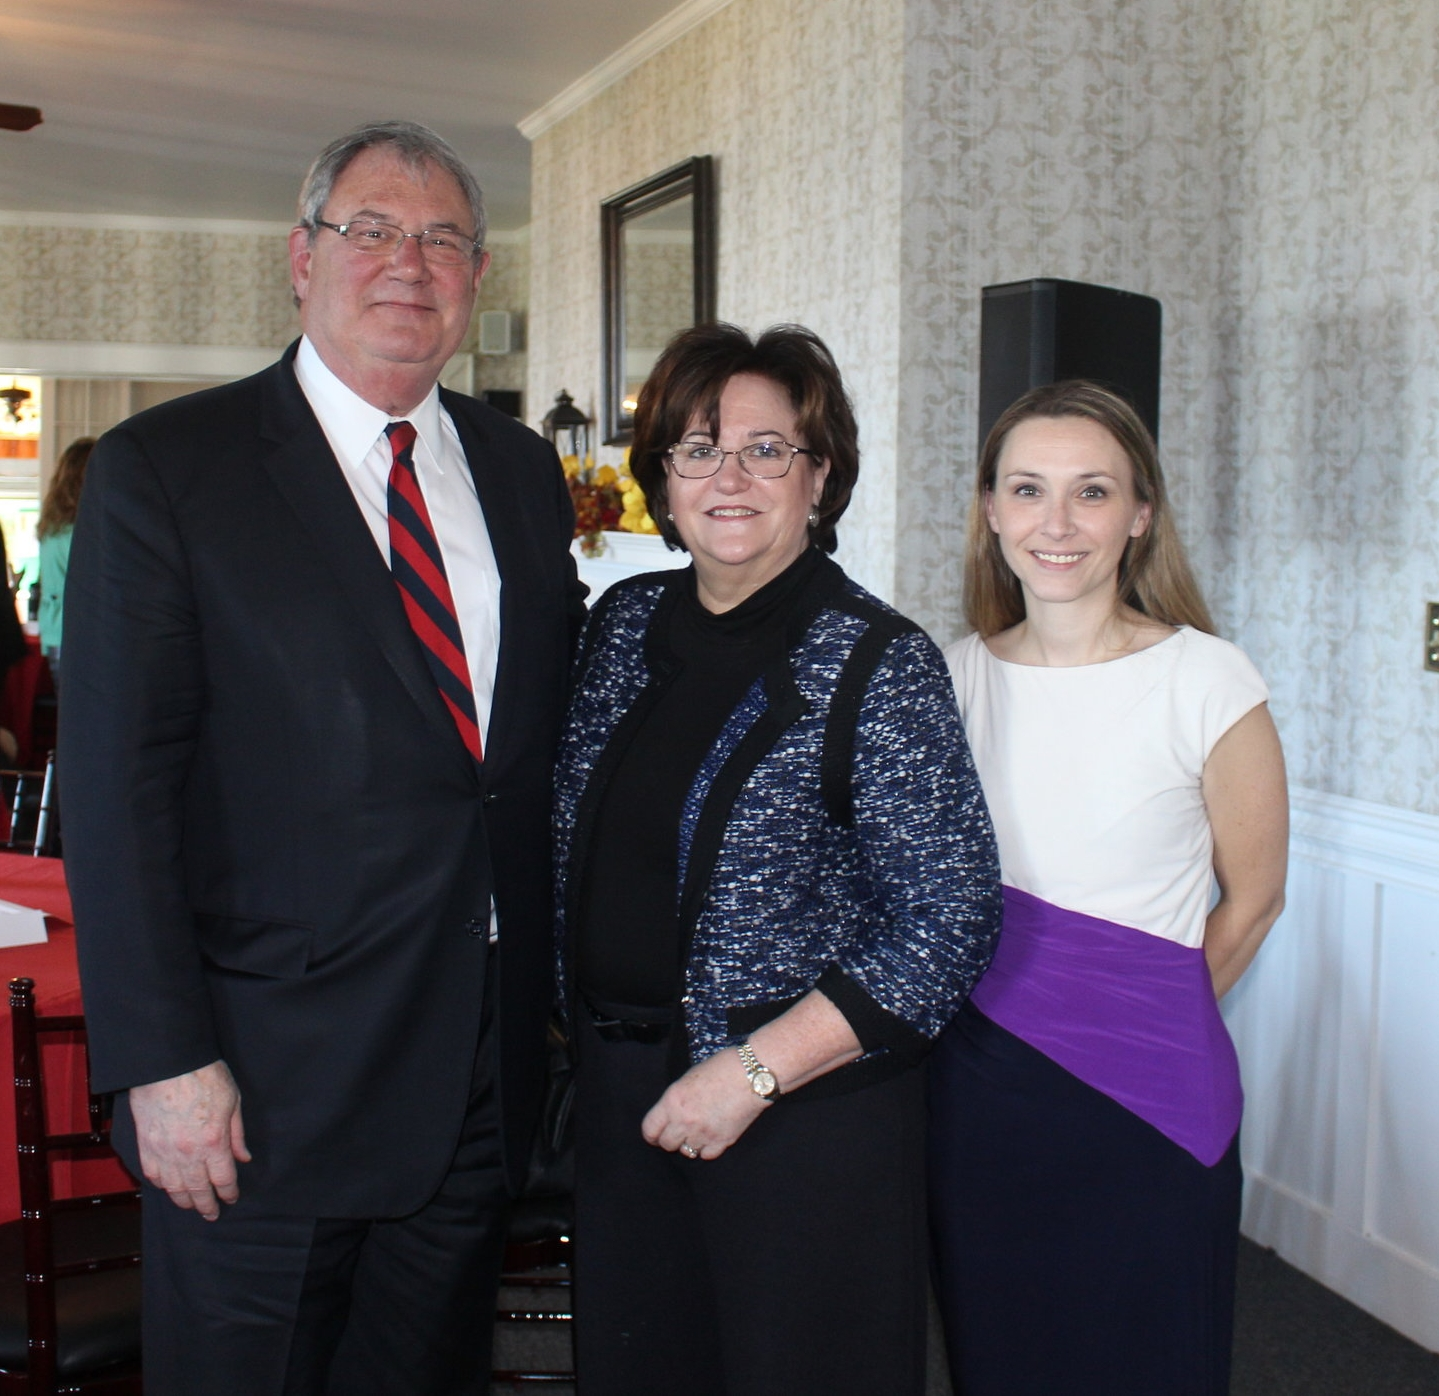 From the left: Dr. John Ettling, President, SUNY Plattsburgh and Thrive Leadership Chair,New York State Education Department Commissioner MaryEllen Elia, and North Country Thrive Director, Brittany Trybendis at North Country Thrive Leadership Council Meeting October 14, 2016 at Valcour Inn and Boathouse.